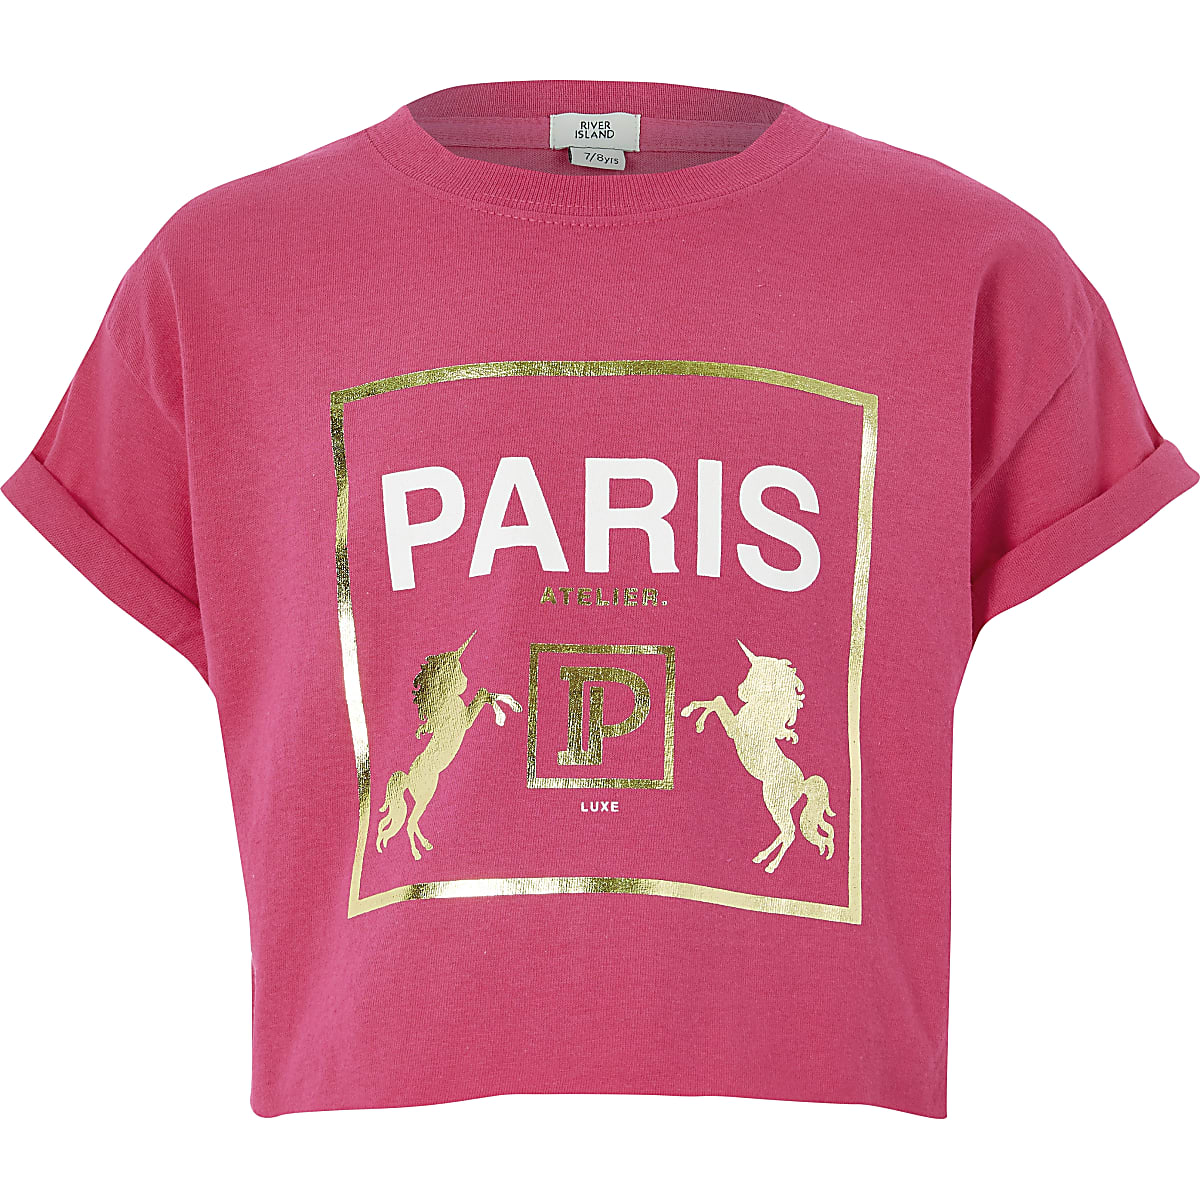 Girls pink 'Paris' printed T-shirt